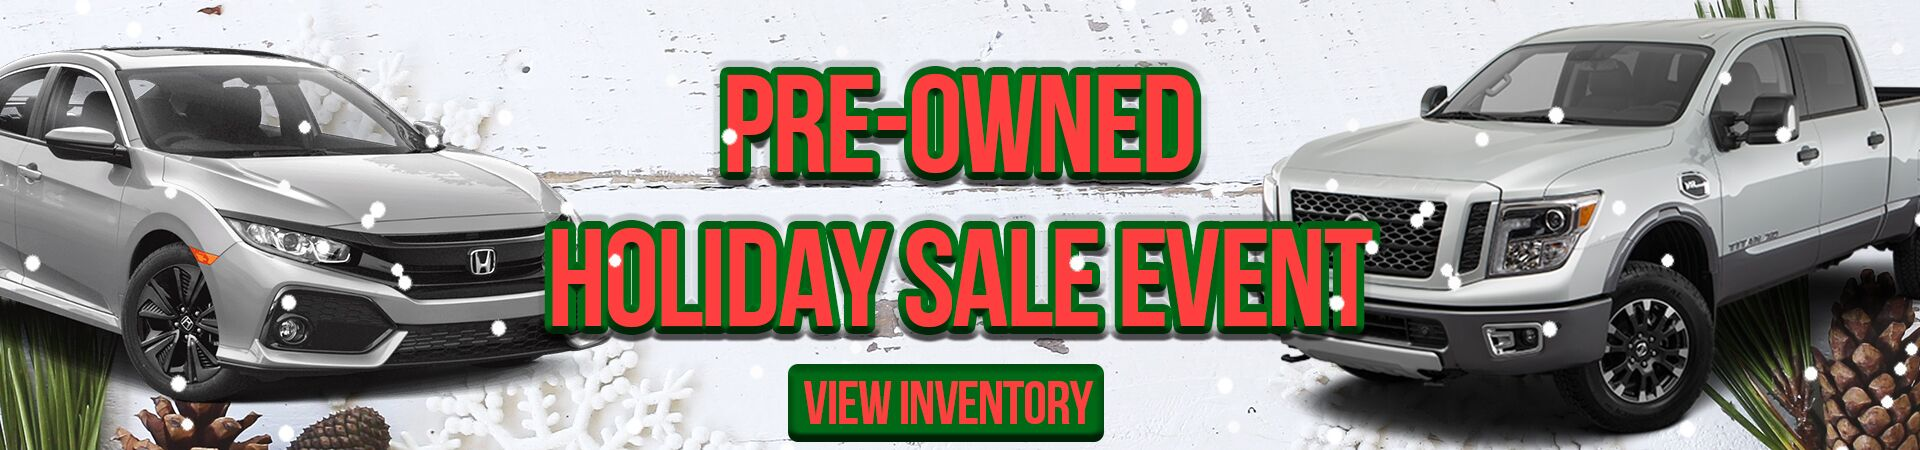 Holiday Preowned Sale 2019DEC